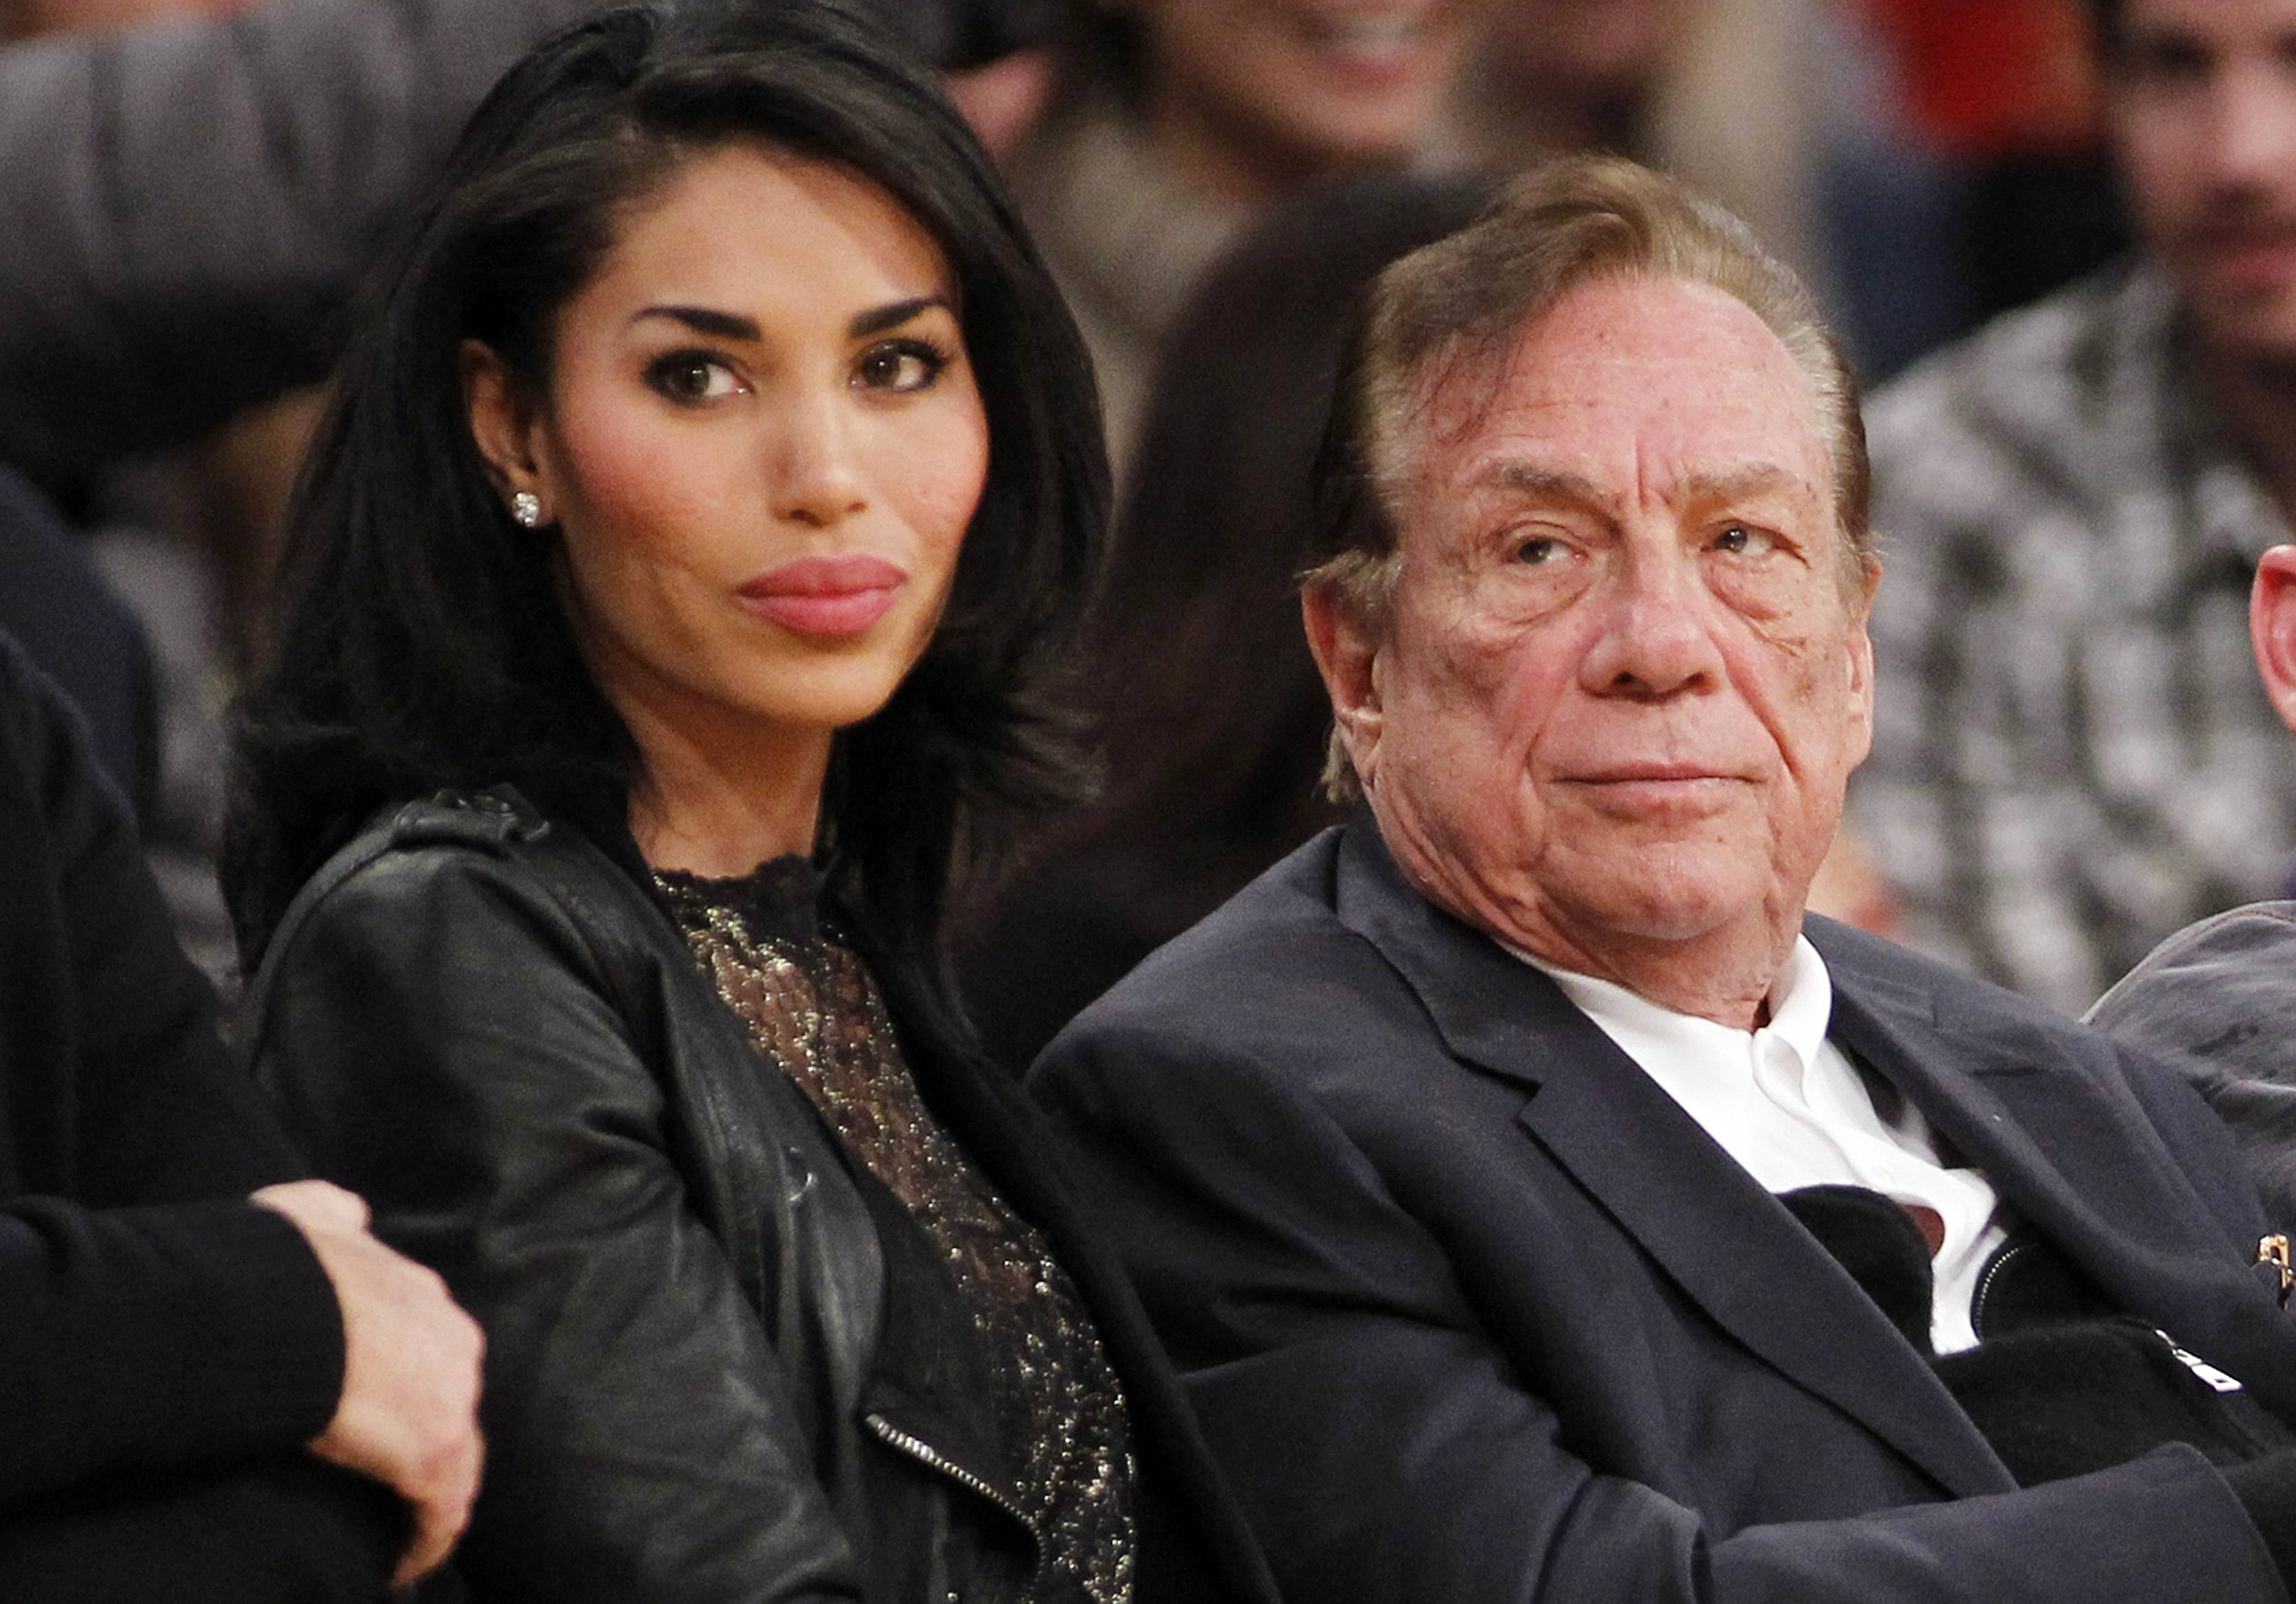 Los Angeles Clippers owner Donald Sterling, right, and V. Stiviano, left. NBA Commissioner Adam Silver announced that Sterling has been banned for life by the NBA.